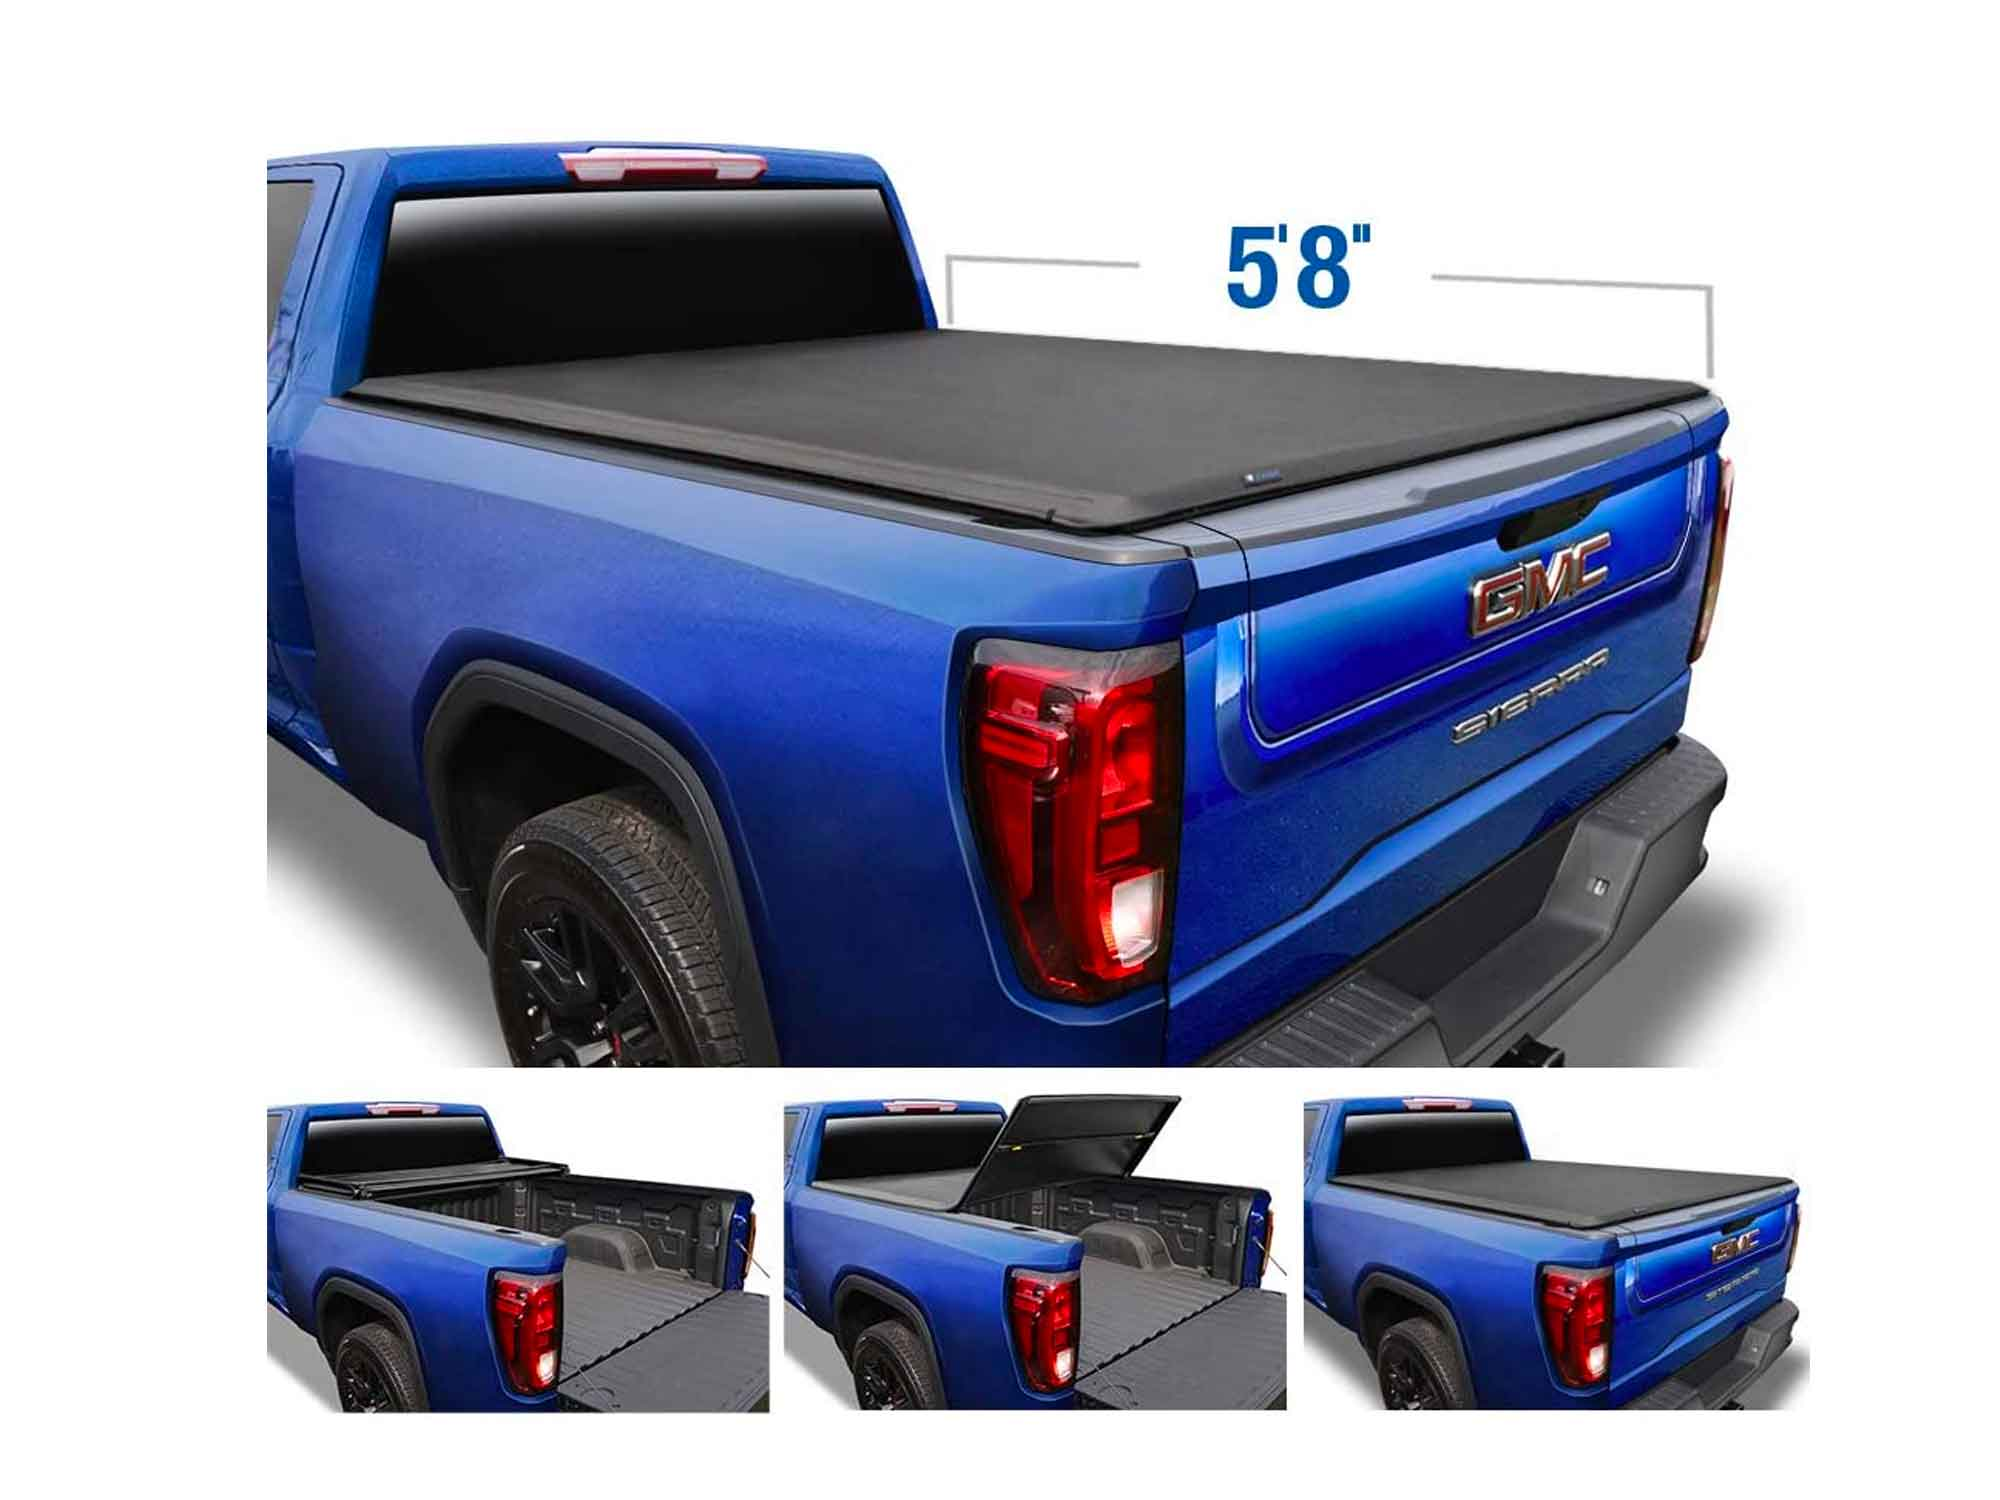 Tyger Auto T3 Soft Tri-Fold Truck Bed Tonneau Cover Compatible with 2019-2021 Chevy Silverado/GMC Sierra 1500 New Body | 5'8